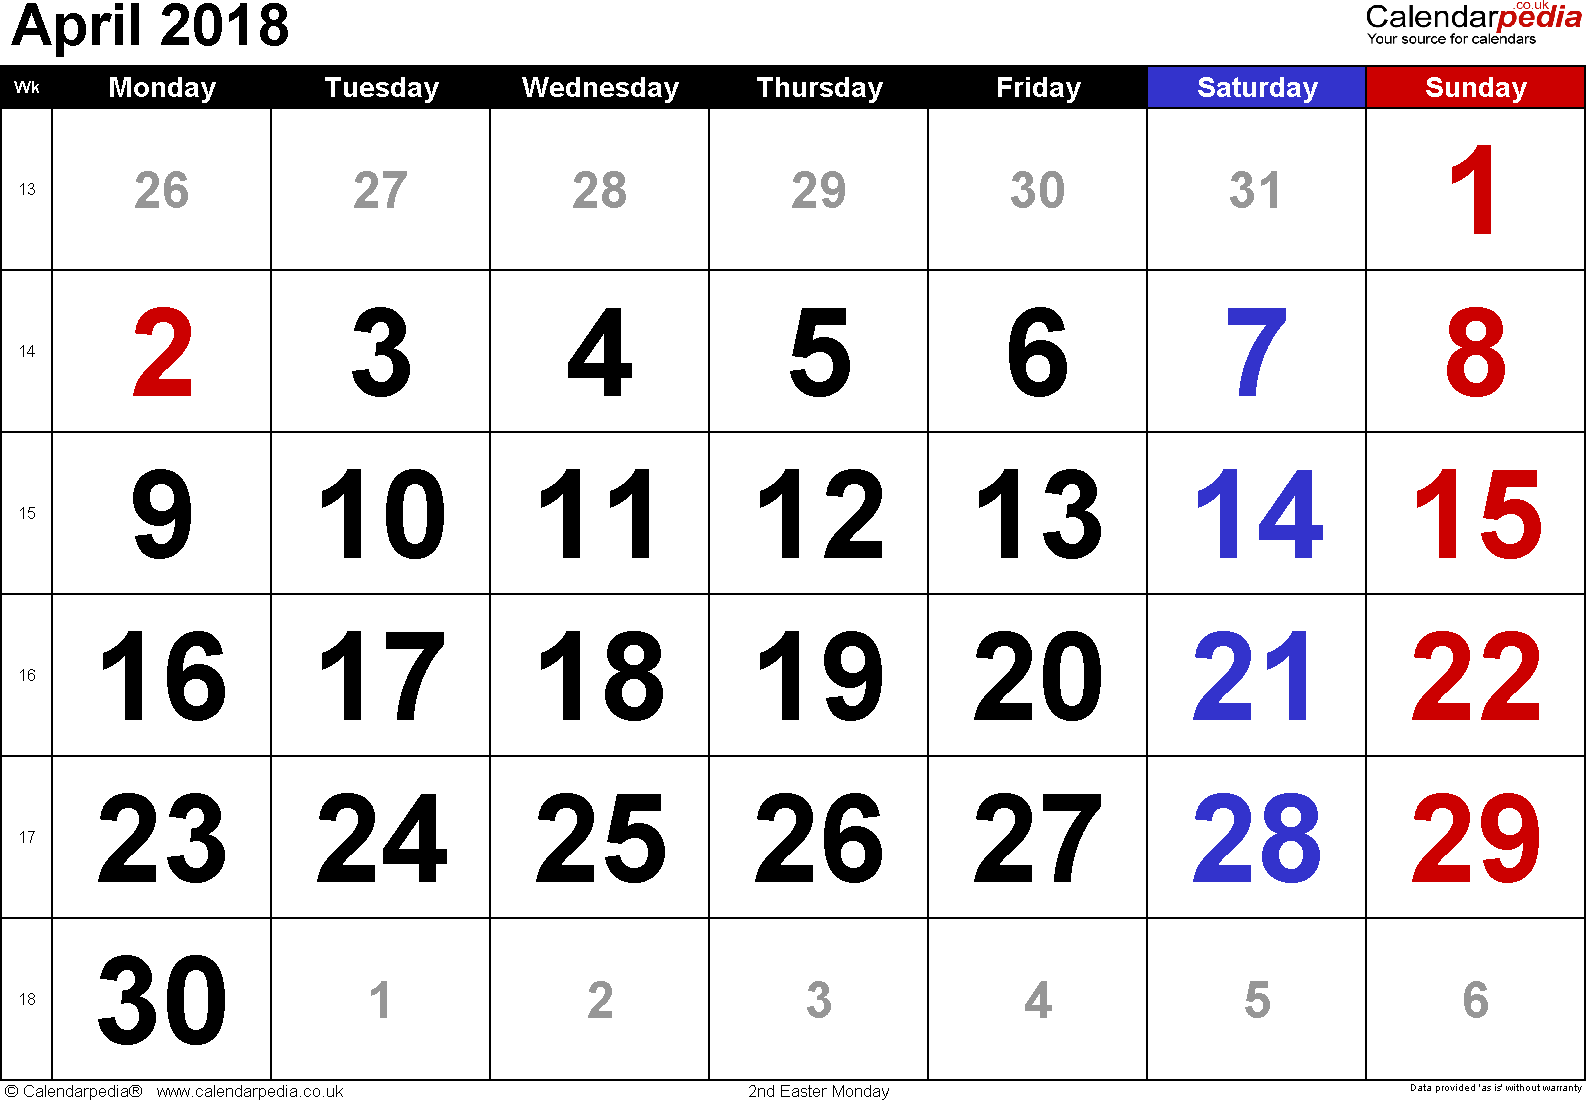 Calendar April 2018, landscape orientation, large numerals, 1 page, with UK bank holidays and week numbers